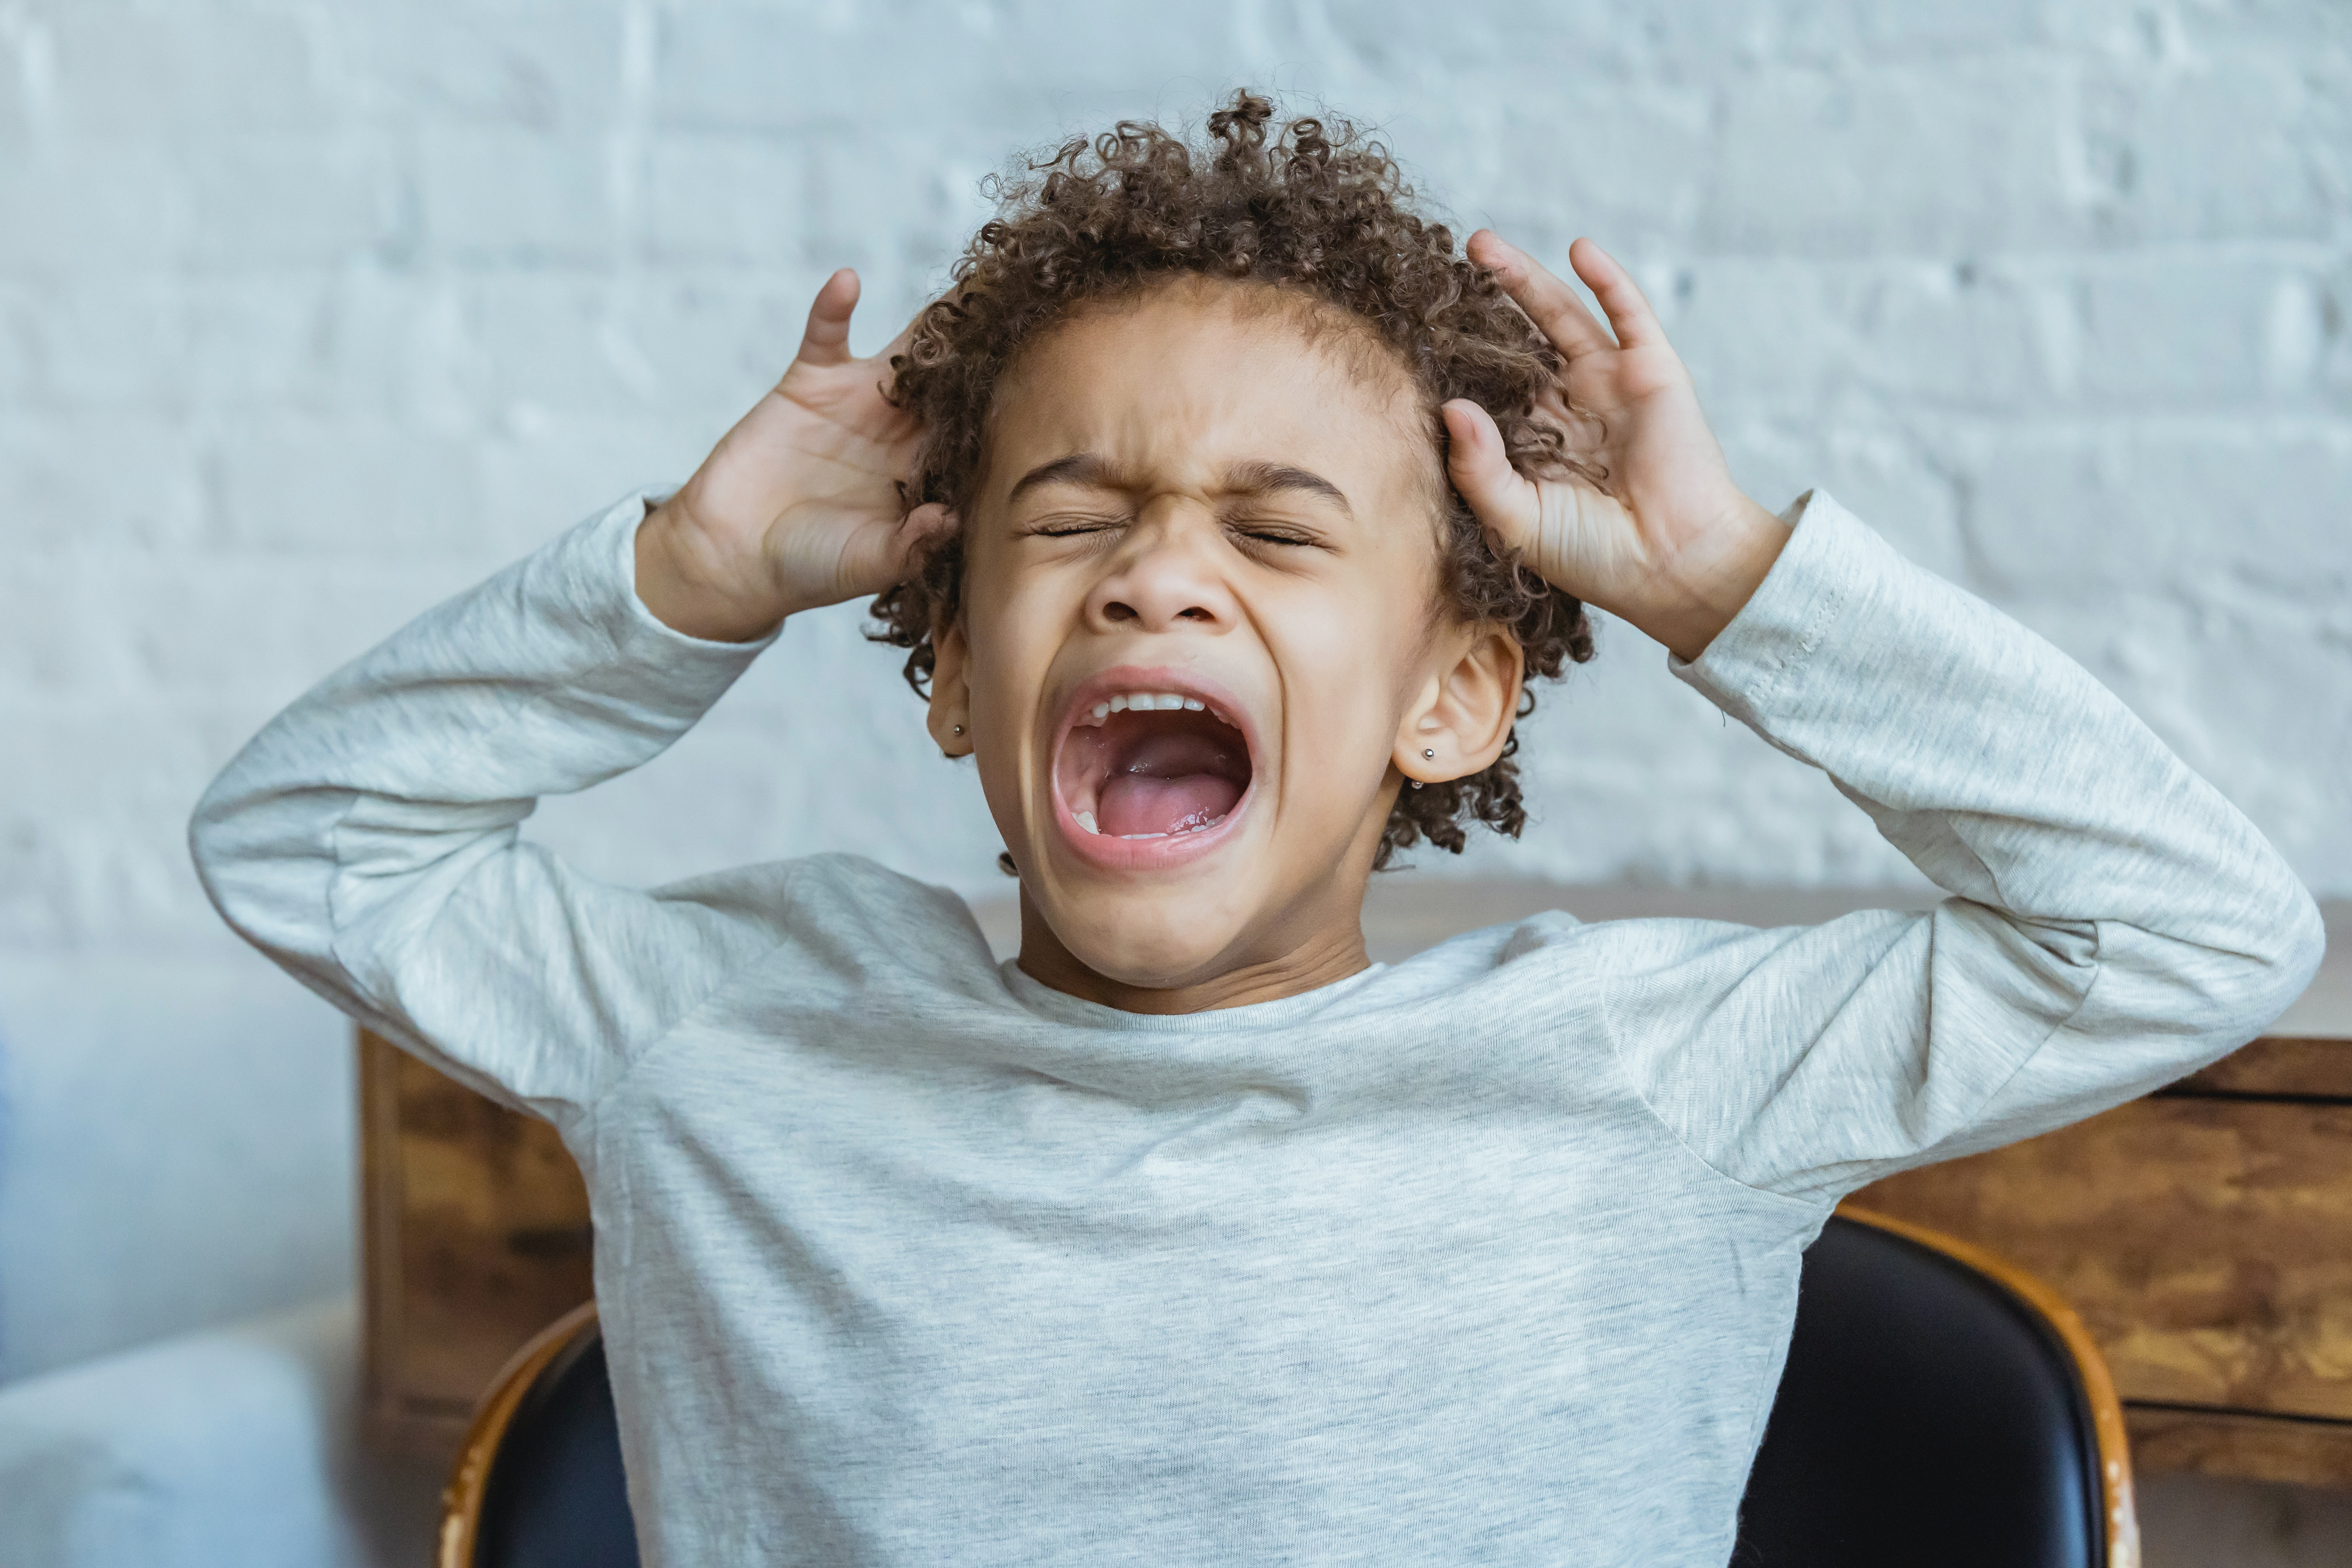 5 Ways to Handle a Defiant Child as We Return Back to In-Person School